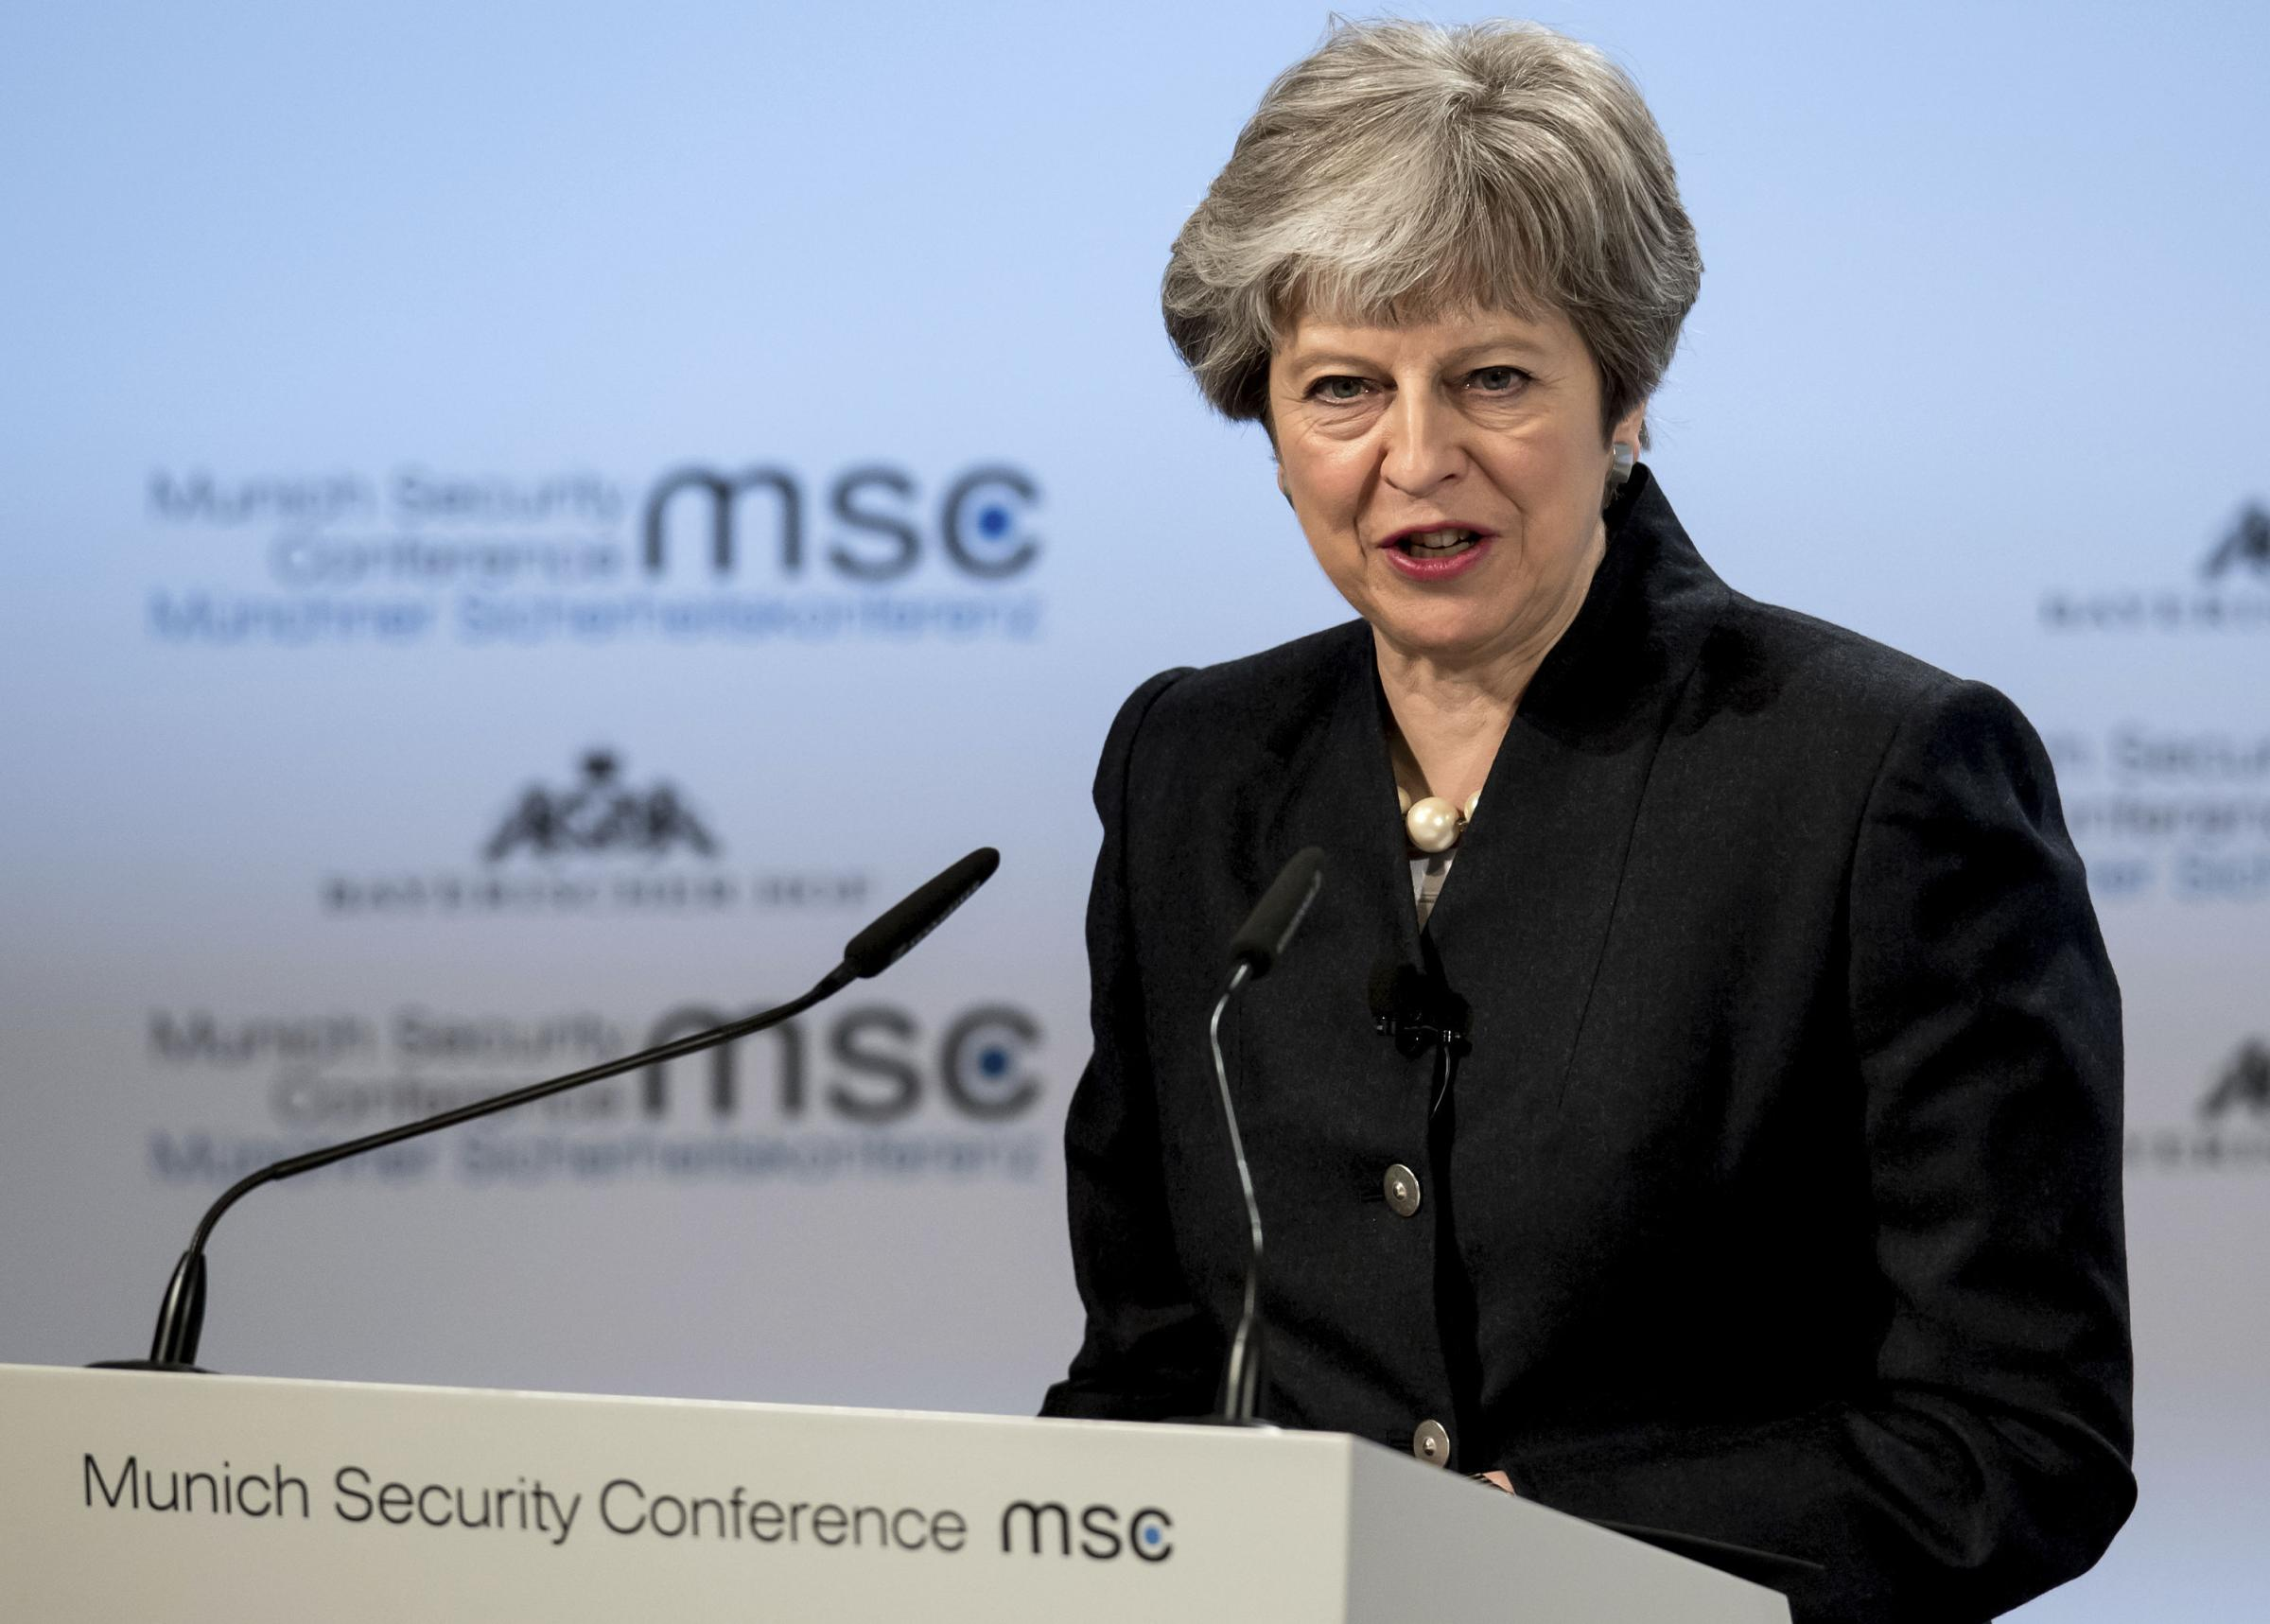 In a speech at the Munich Security Conference, Theresa May warned the rest of the EU over 'damaging real-world consequences